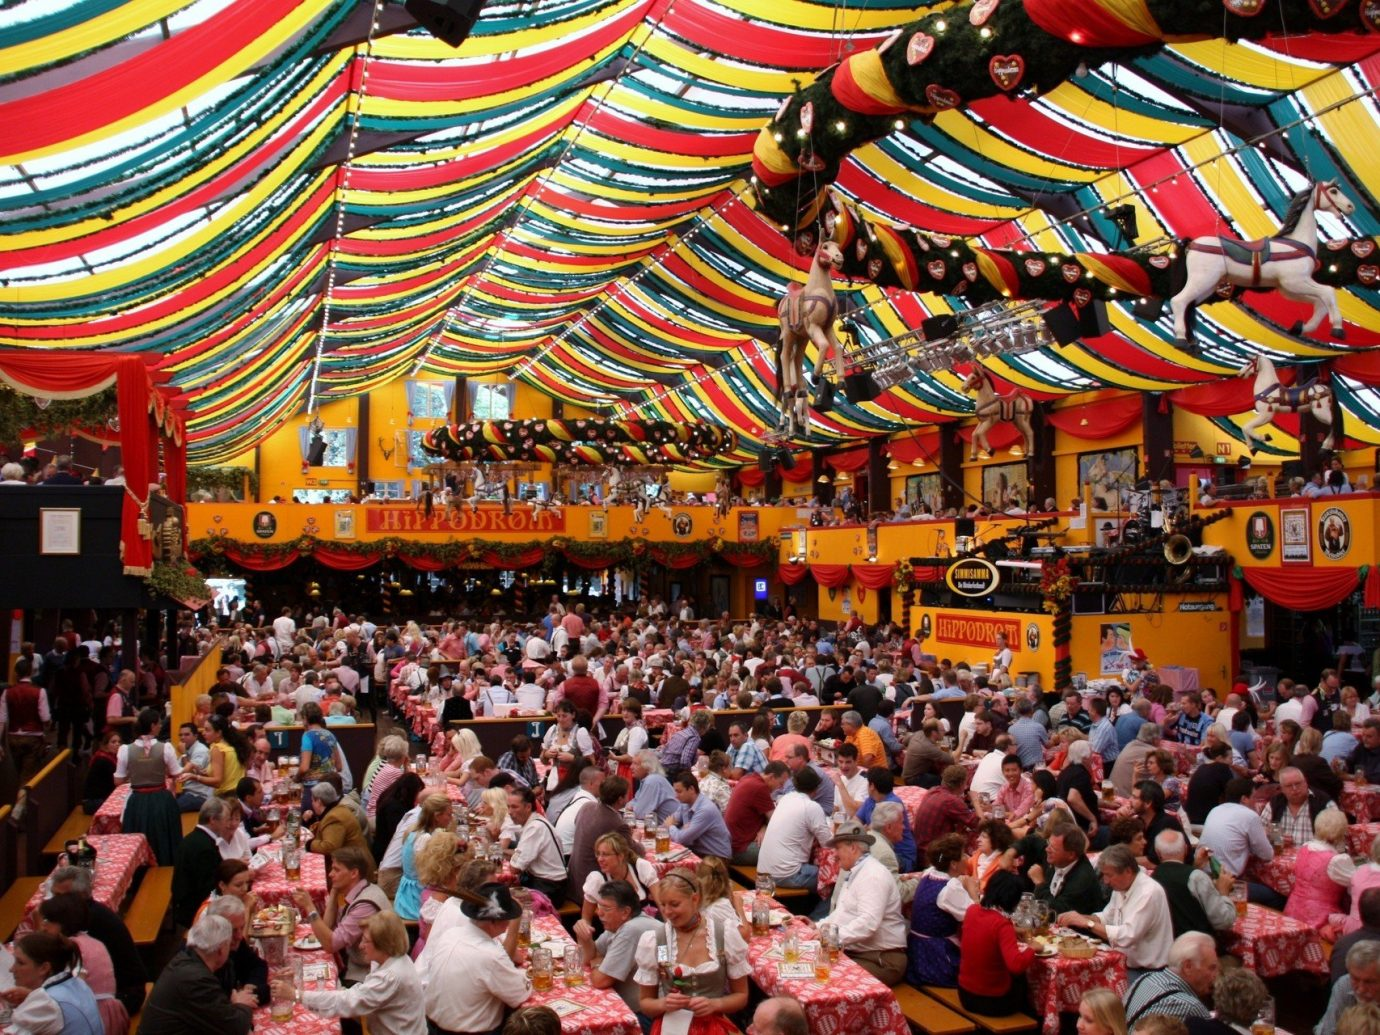 Offbeat Trip Ideas person crowd people outdoor colorful audience event festival bazaar market fair chinese new year colored auditorium